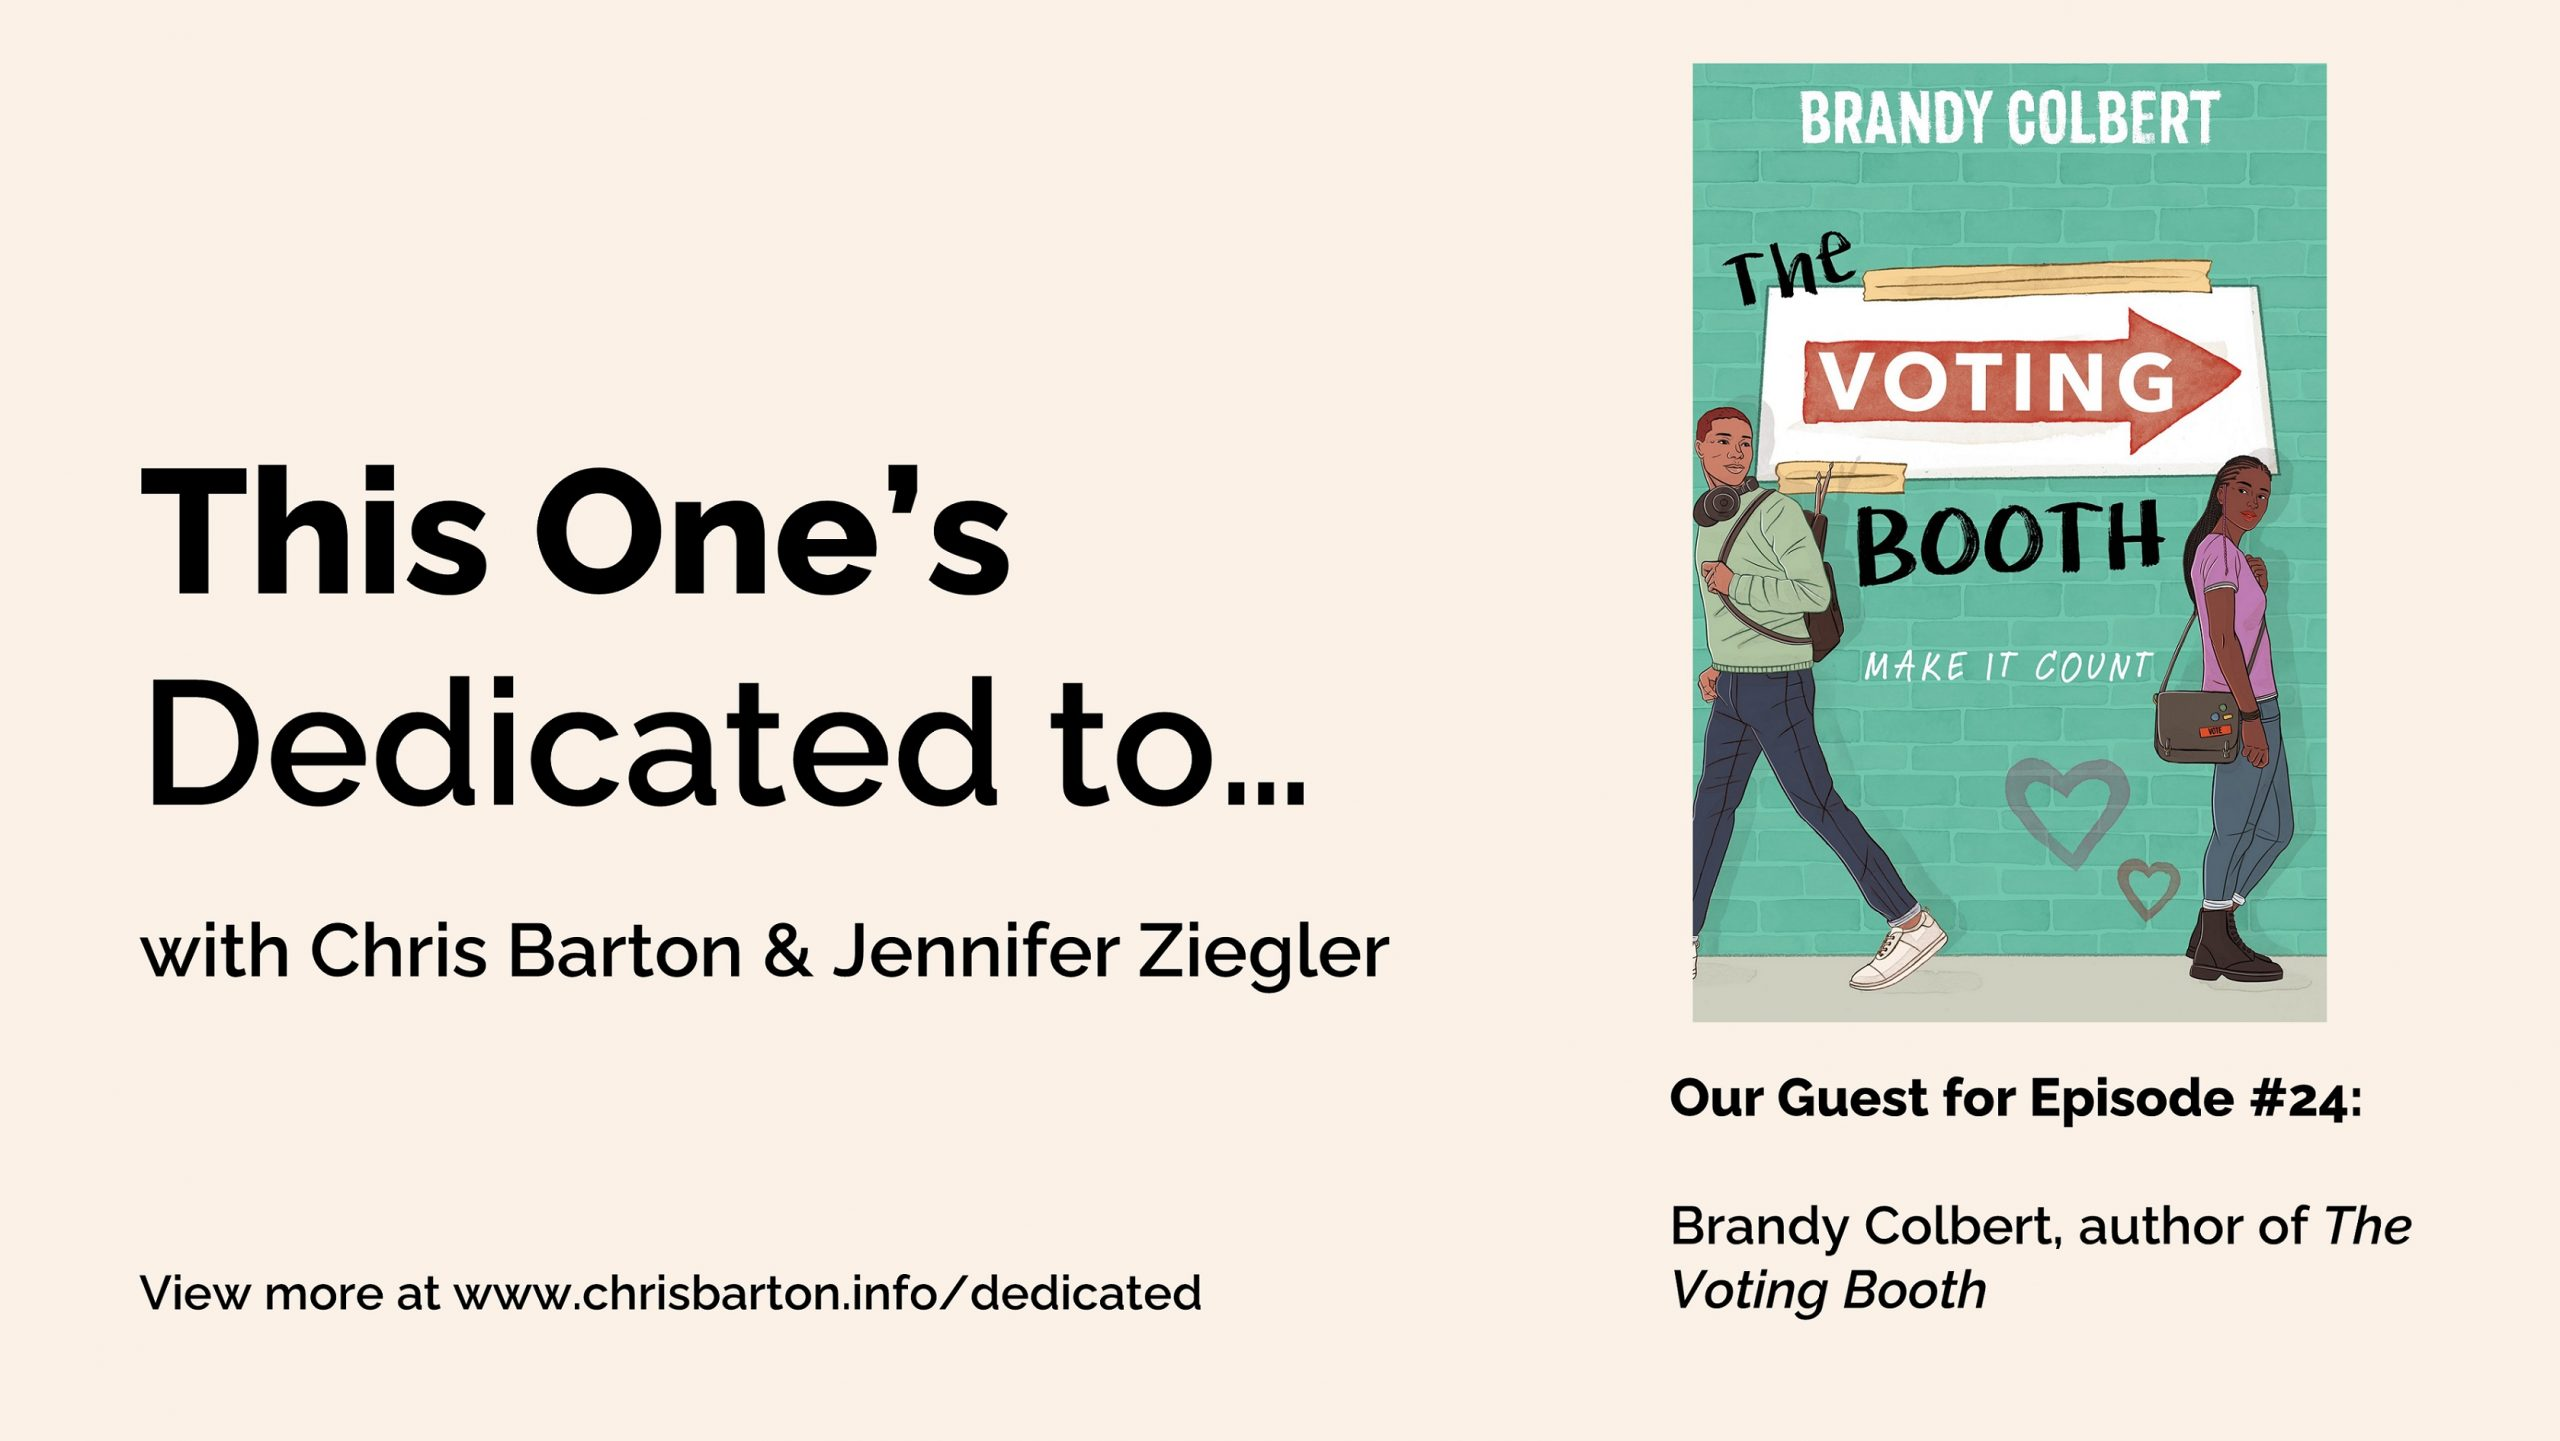 This One's Dedicated to… (#24): Brandy Colbert, The Voting Booth